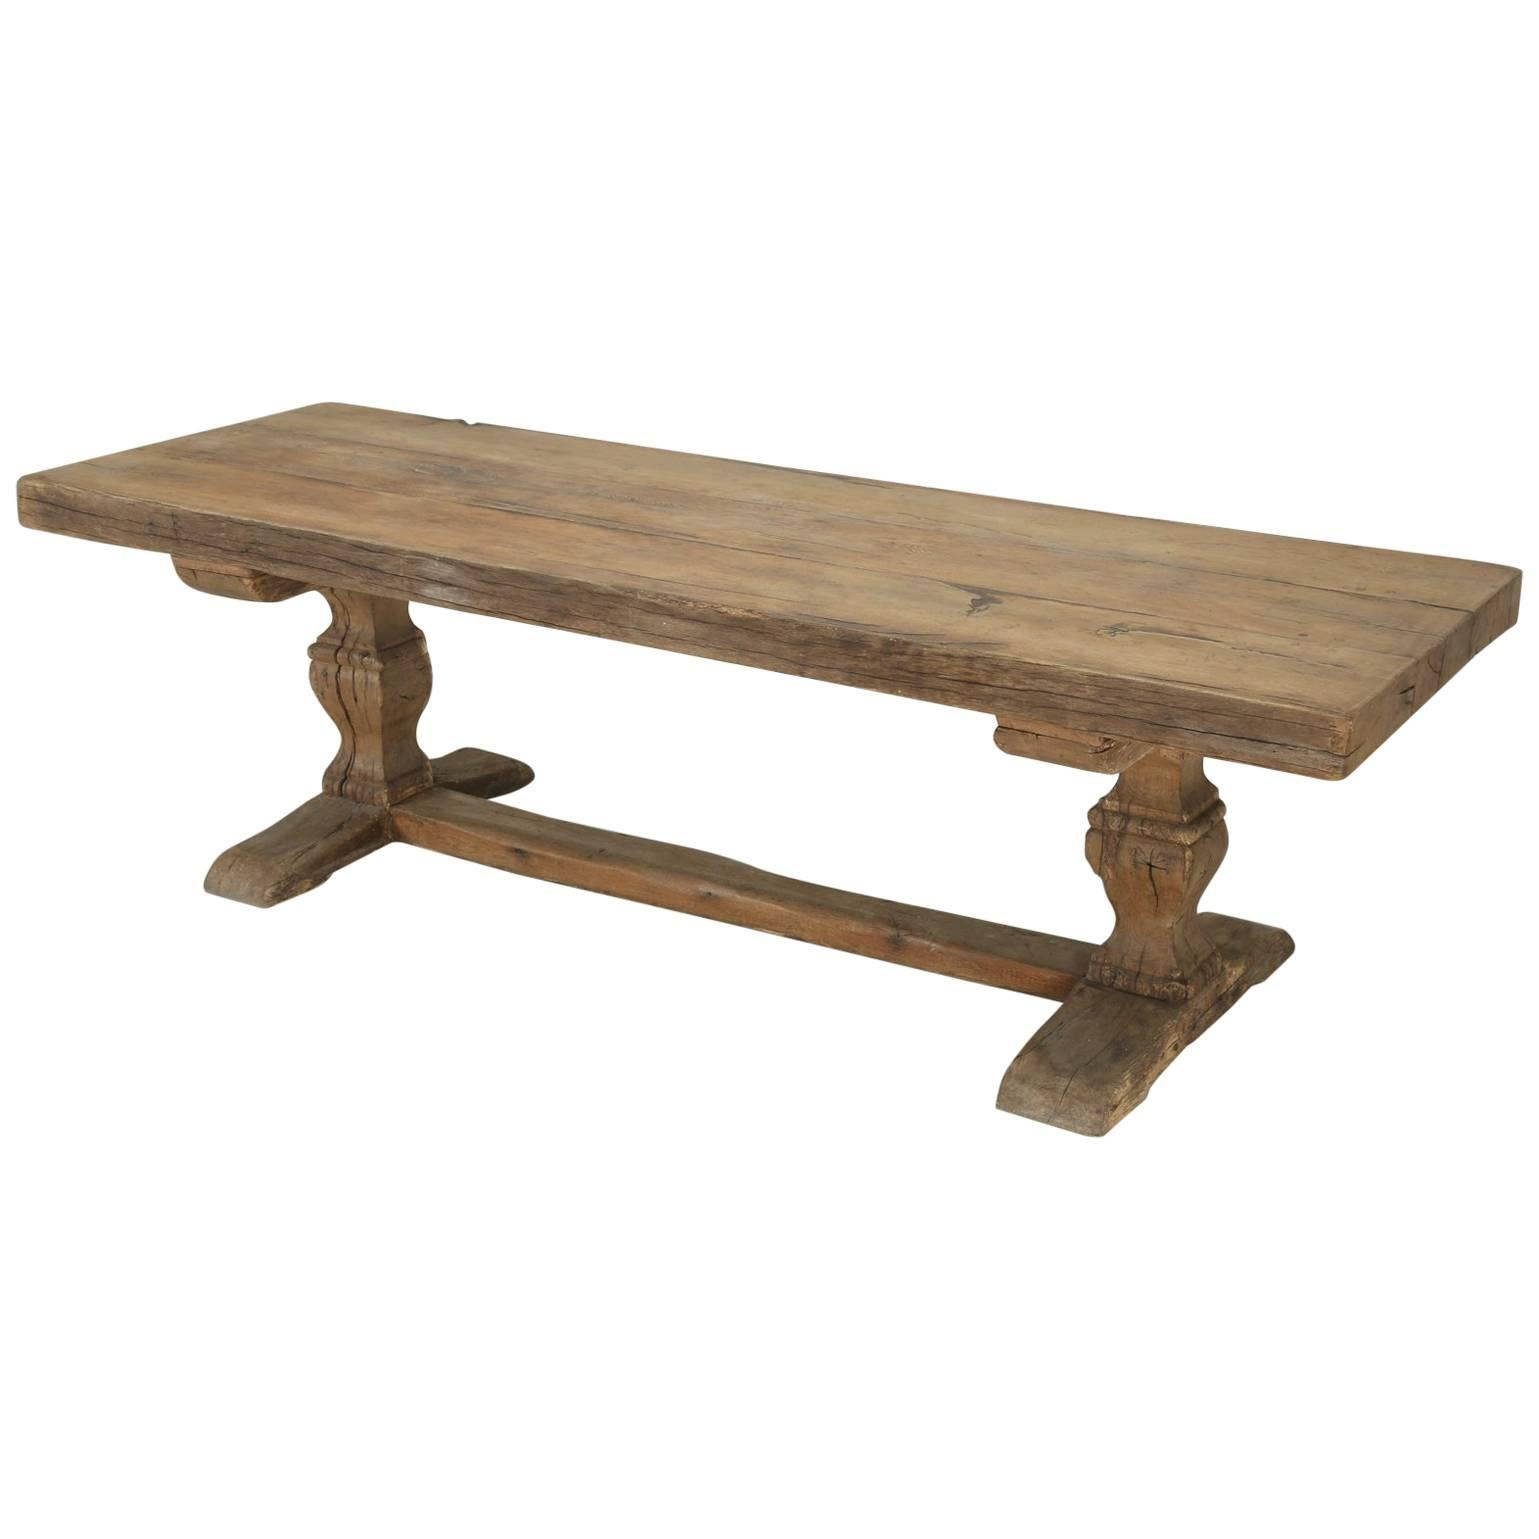 Antique French Trestle Table, Circa 300 Years Old For Sale